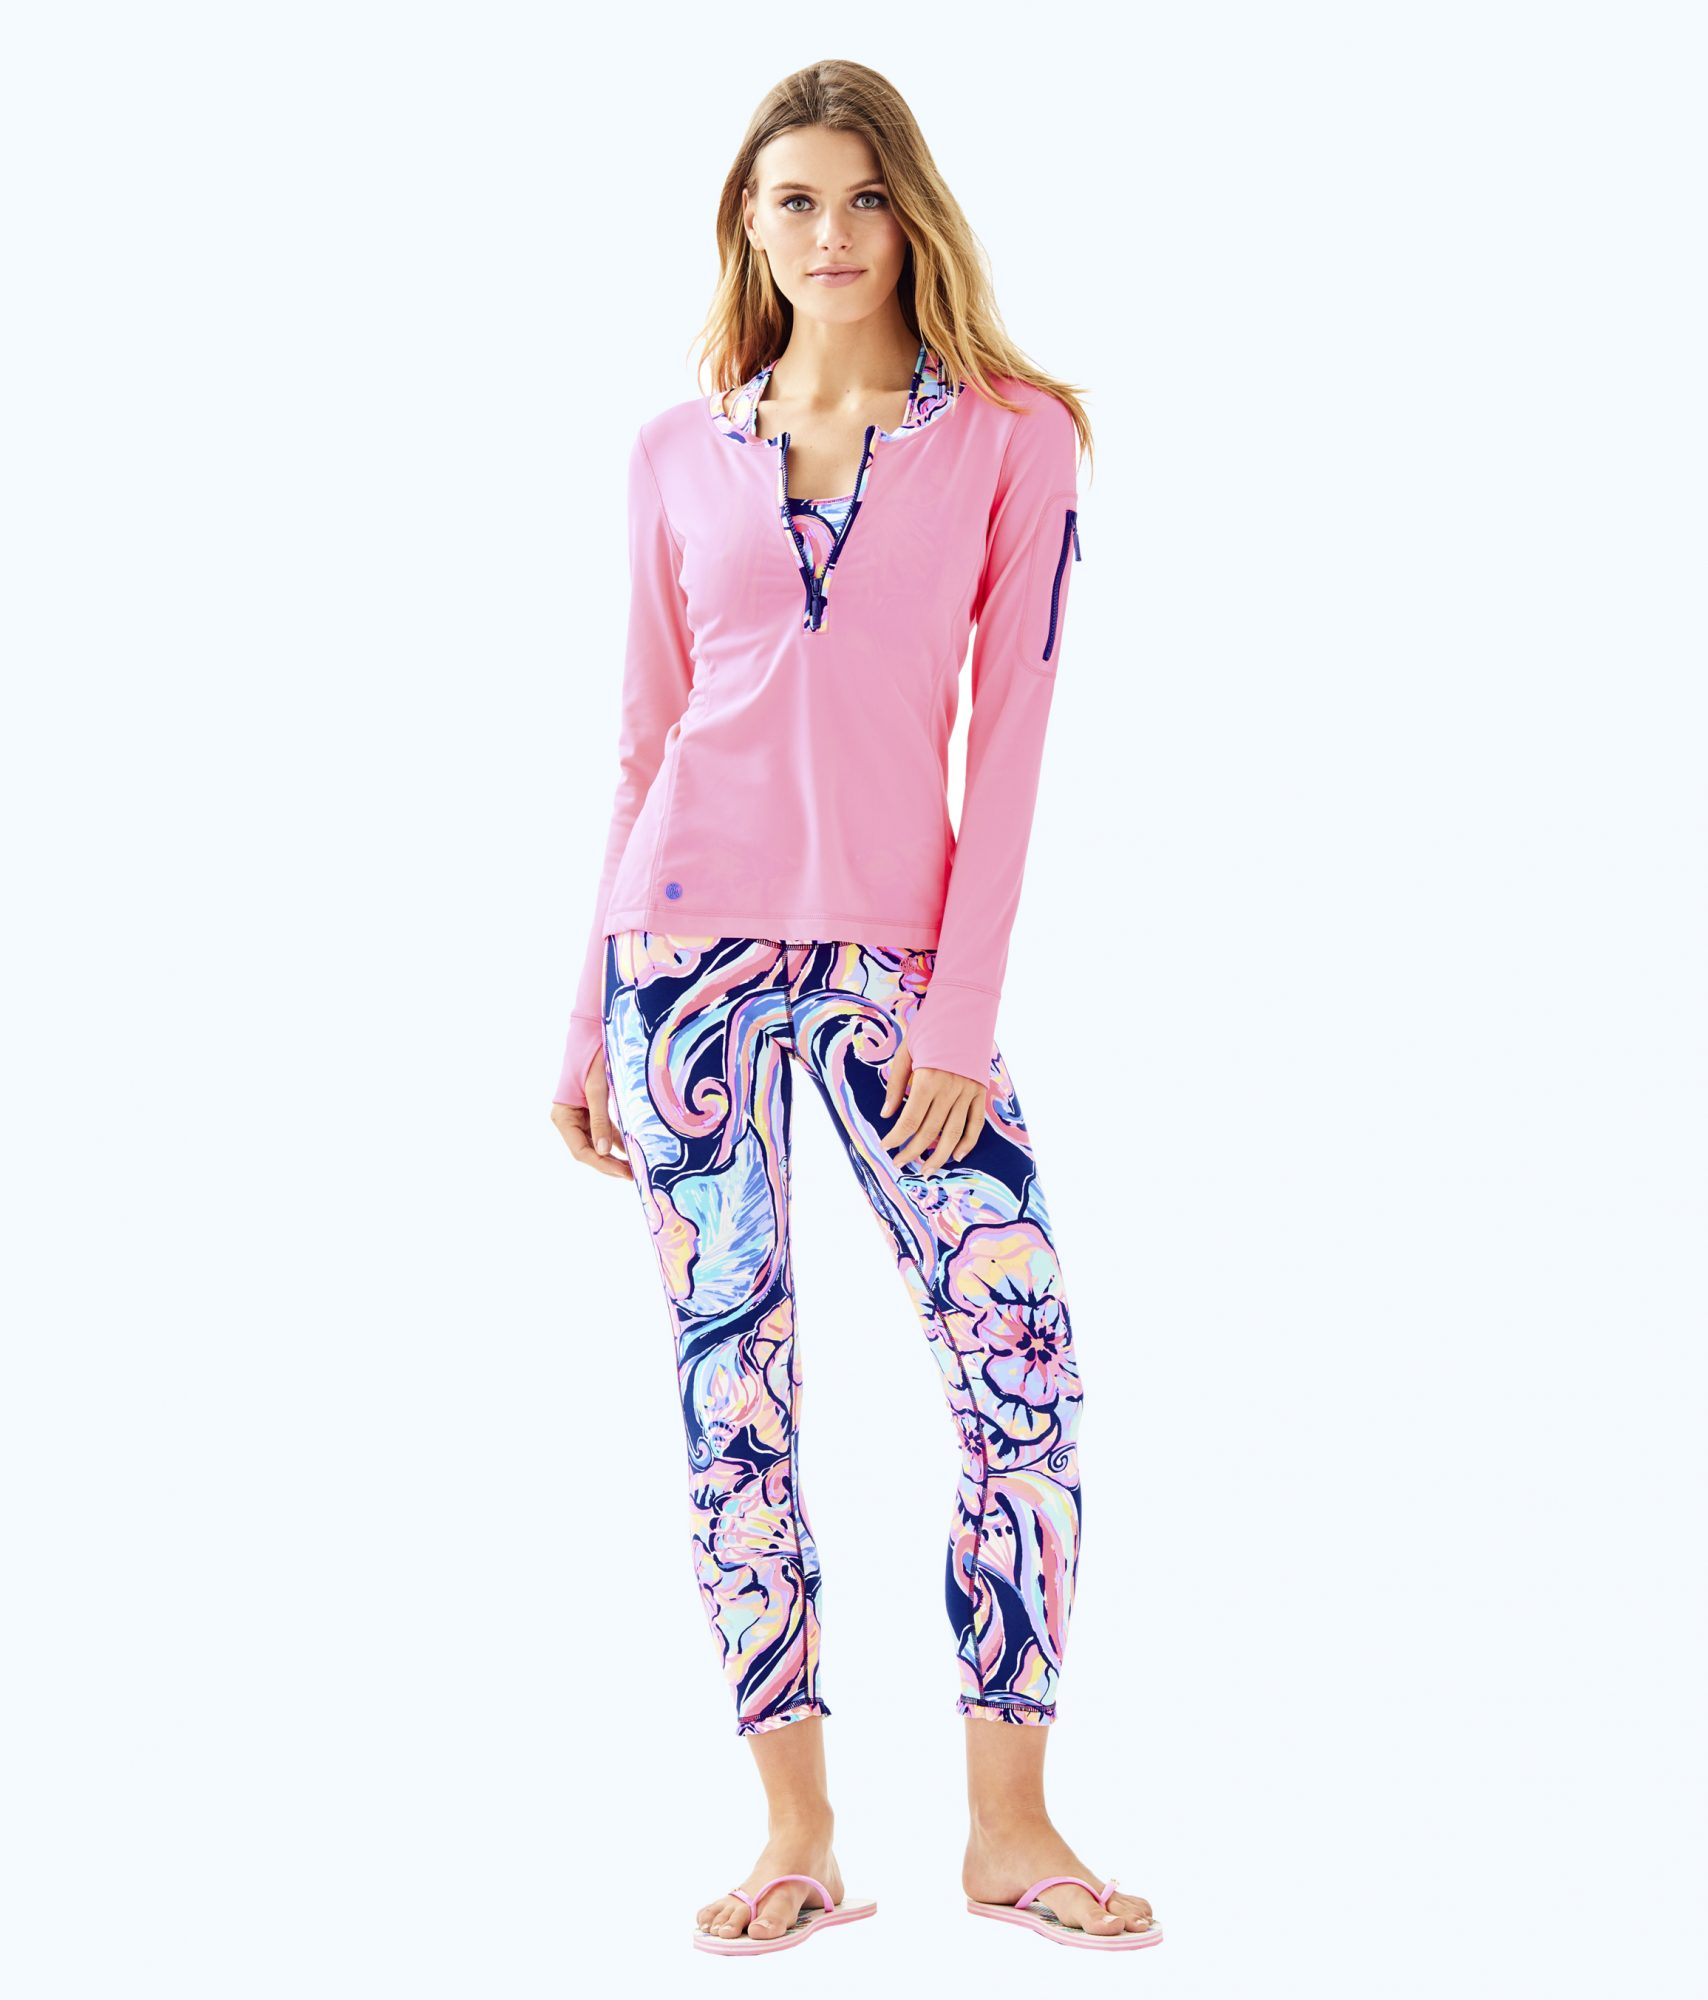 Lilly Pulitzer's Summer Collection Just Launched, Here's Everything We're Buying ASAP lilly-p-leggings